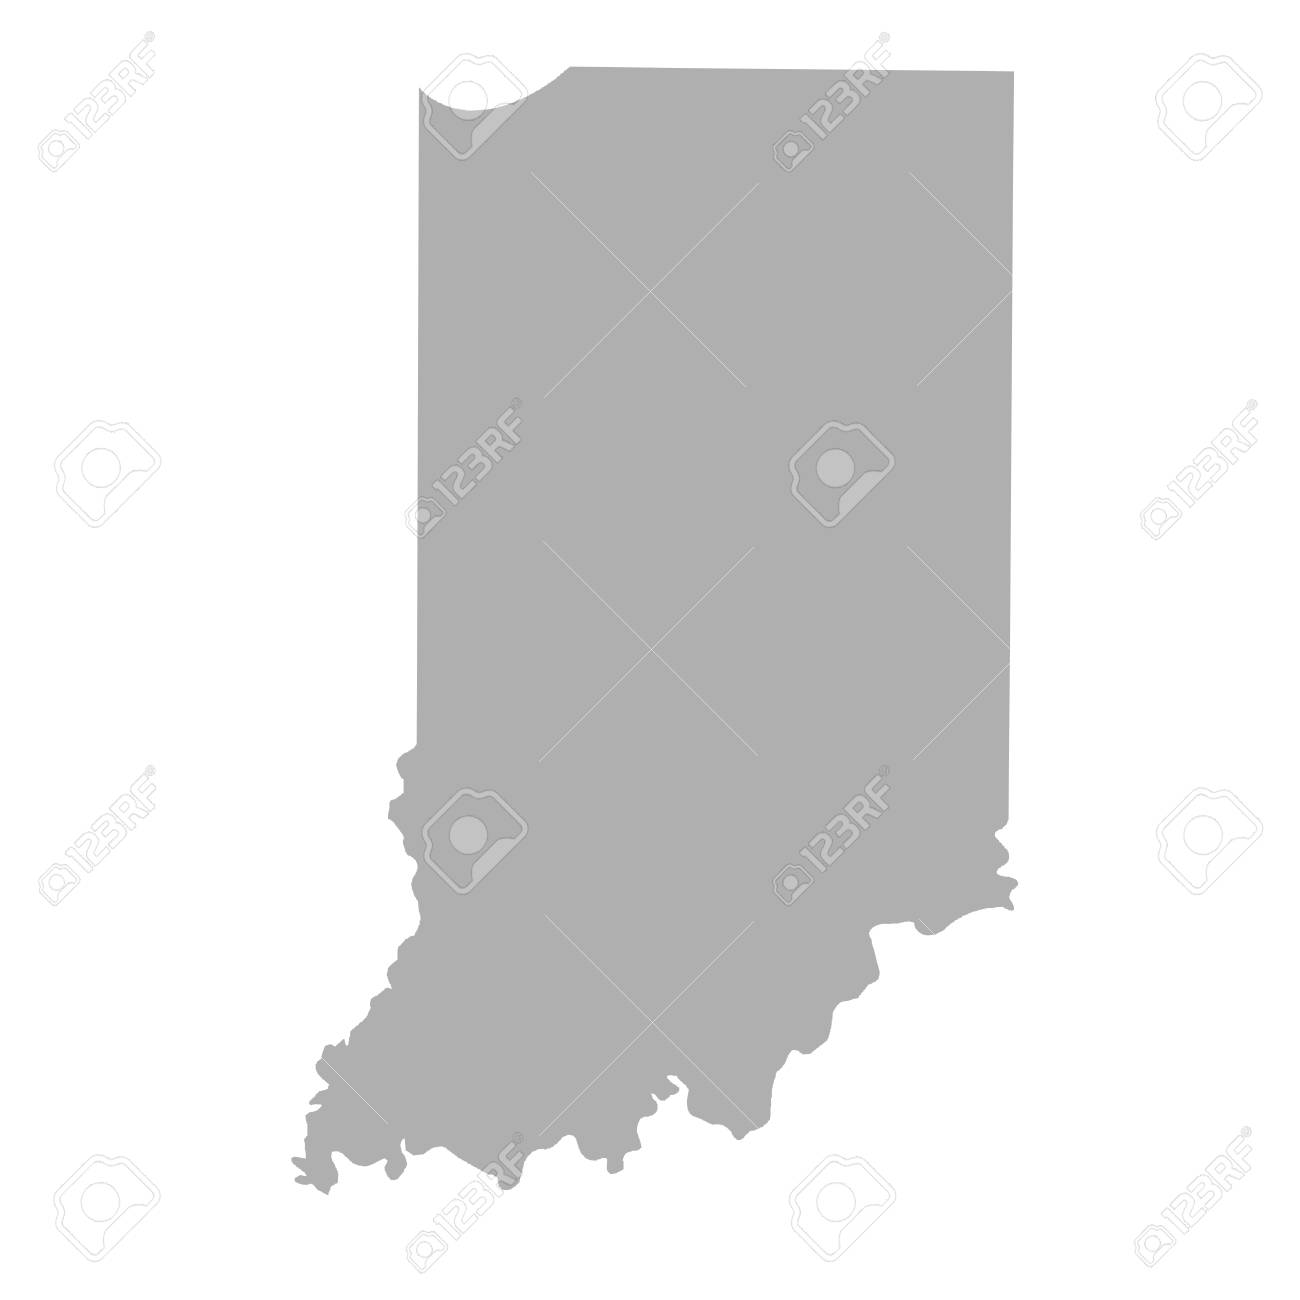 Indiana State map isolated on a white background, USA. on new mexico map usa, virginia map usa, oregon map usa, indiana road map of usa, akron map usa, indiana on map, united states political map usa, indiana city usa, tulsa map usa, oklahoma map usa, michigan map usa, montana map usa, yale map usa, columbia map usa, kentucky map usa, minnesota map usa, show map of indiana usa, iowa map usa, mississippi map usa, evansville map usa,